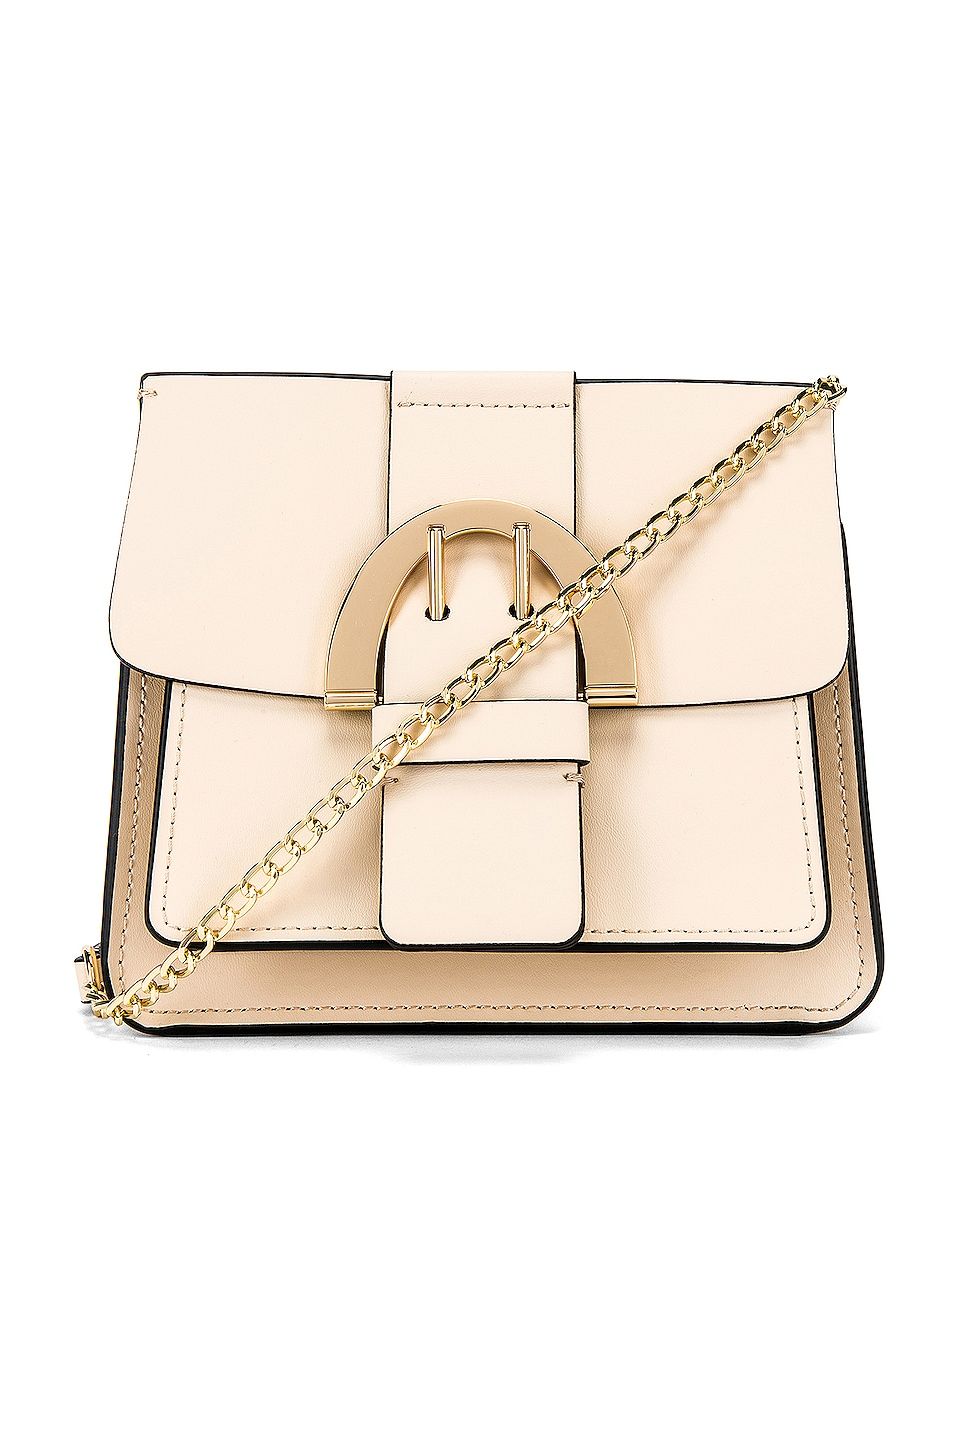 Zac Zac Posen Biba Buck Chain Crossbody in Ivory